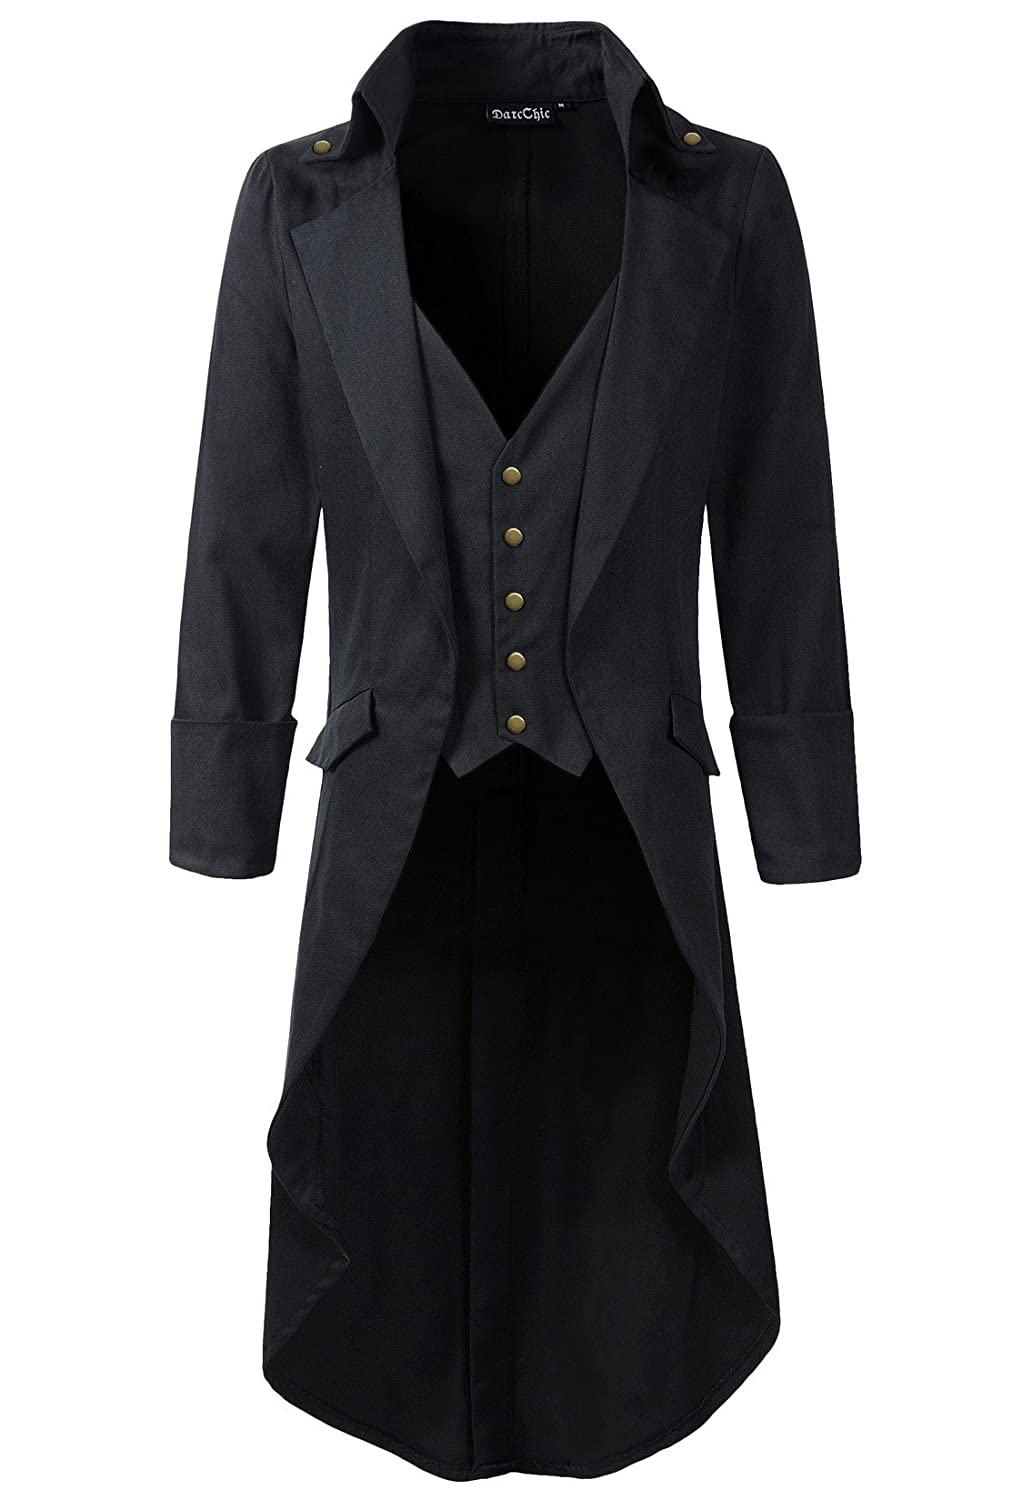 Men's Steampunk Clothing, Costumes, Fashion Mens Gothic Tailcoat Jacket Black Steampunk VTG Victorian High Collar Coat DarcChic Mens Gothic Tailcoat Jacket Black Steampunk VTG Victorian Coat $63.00 AT vintagedancer.com